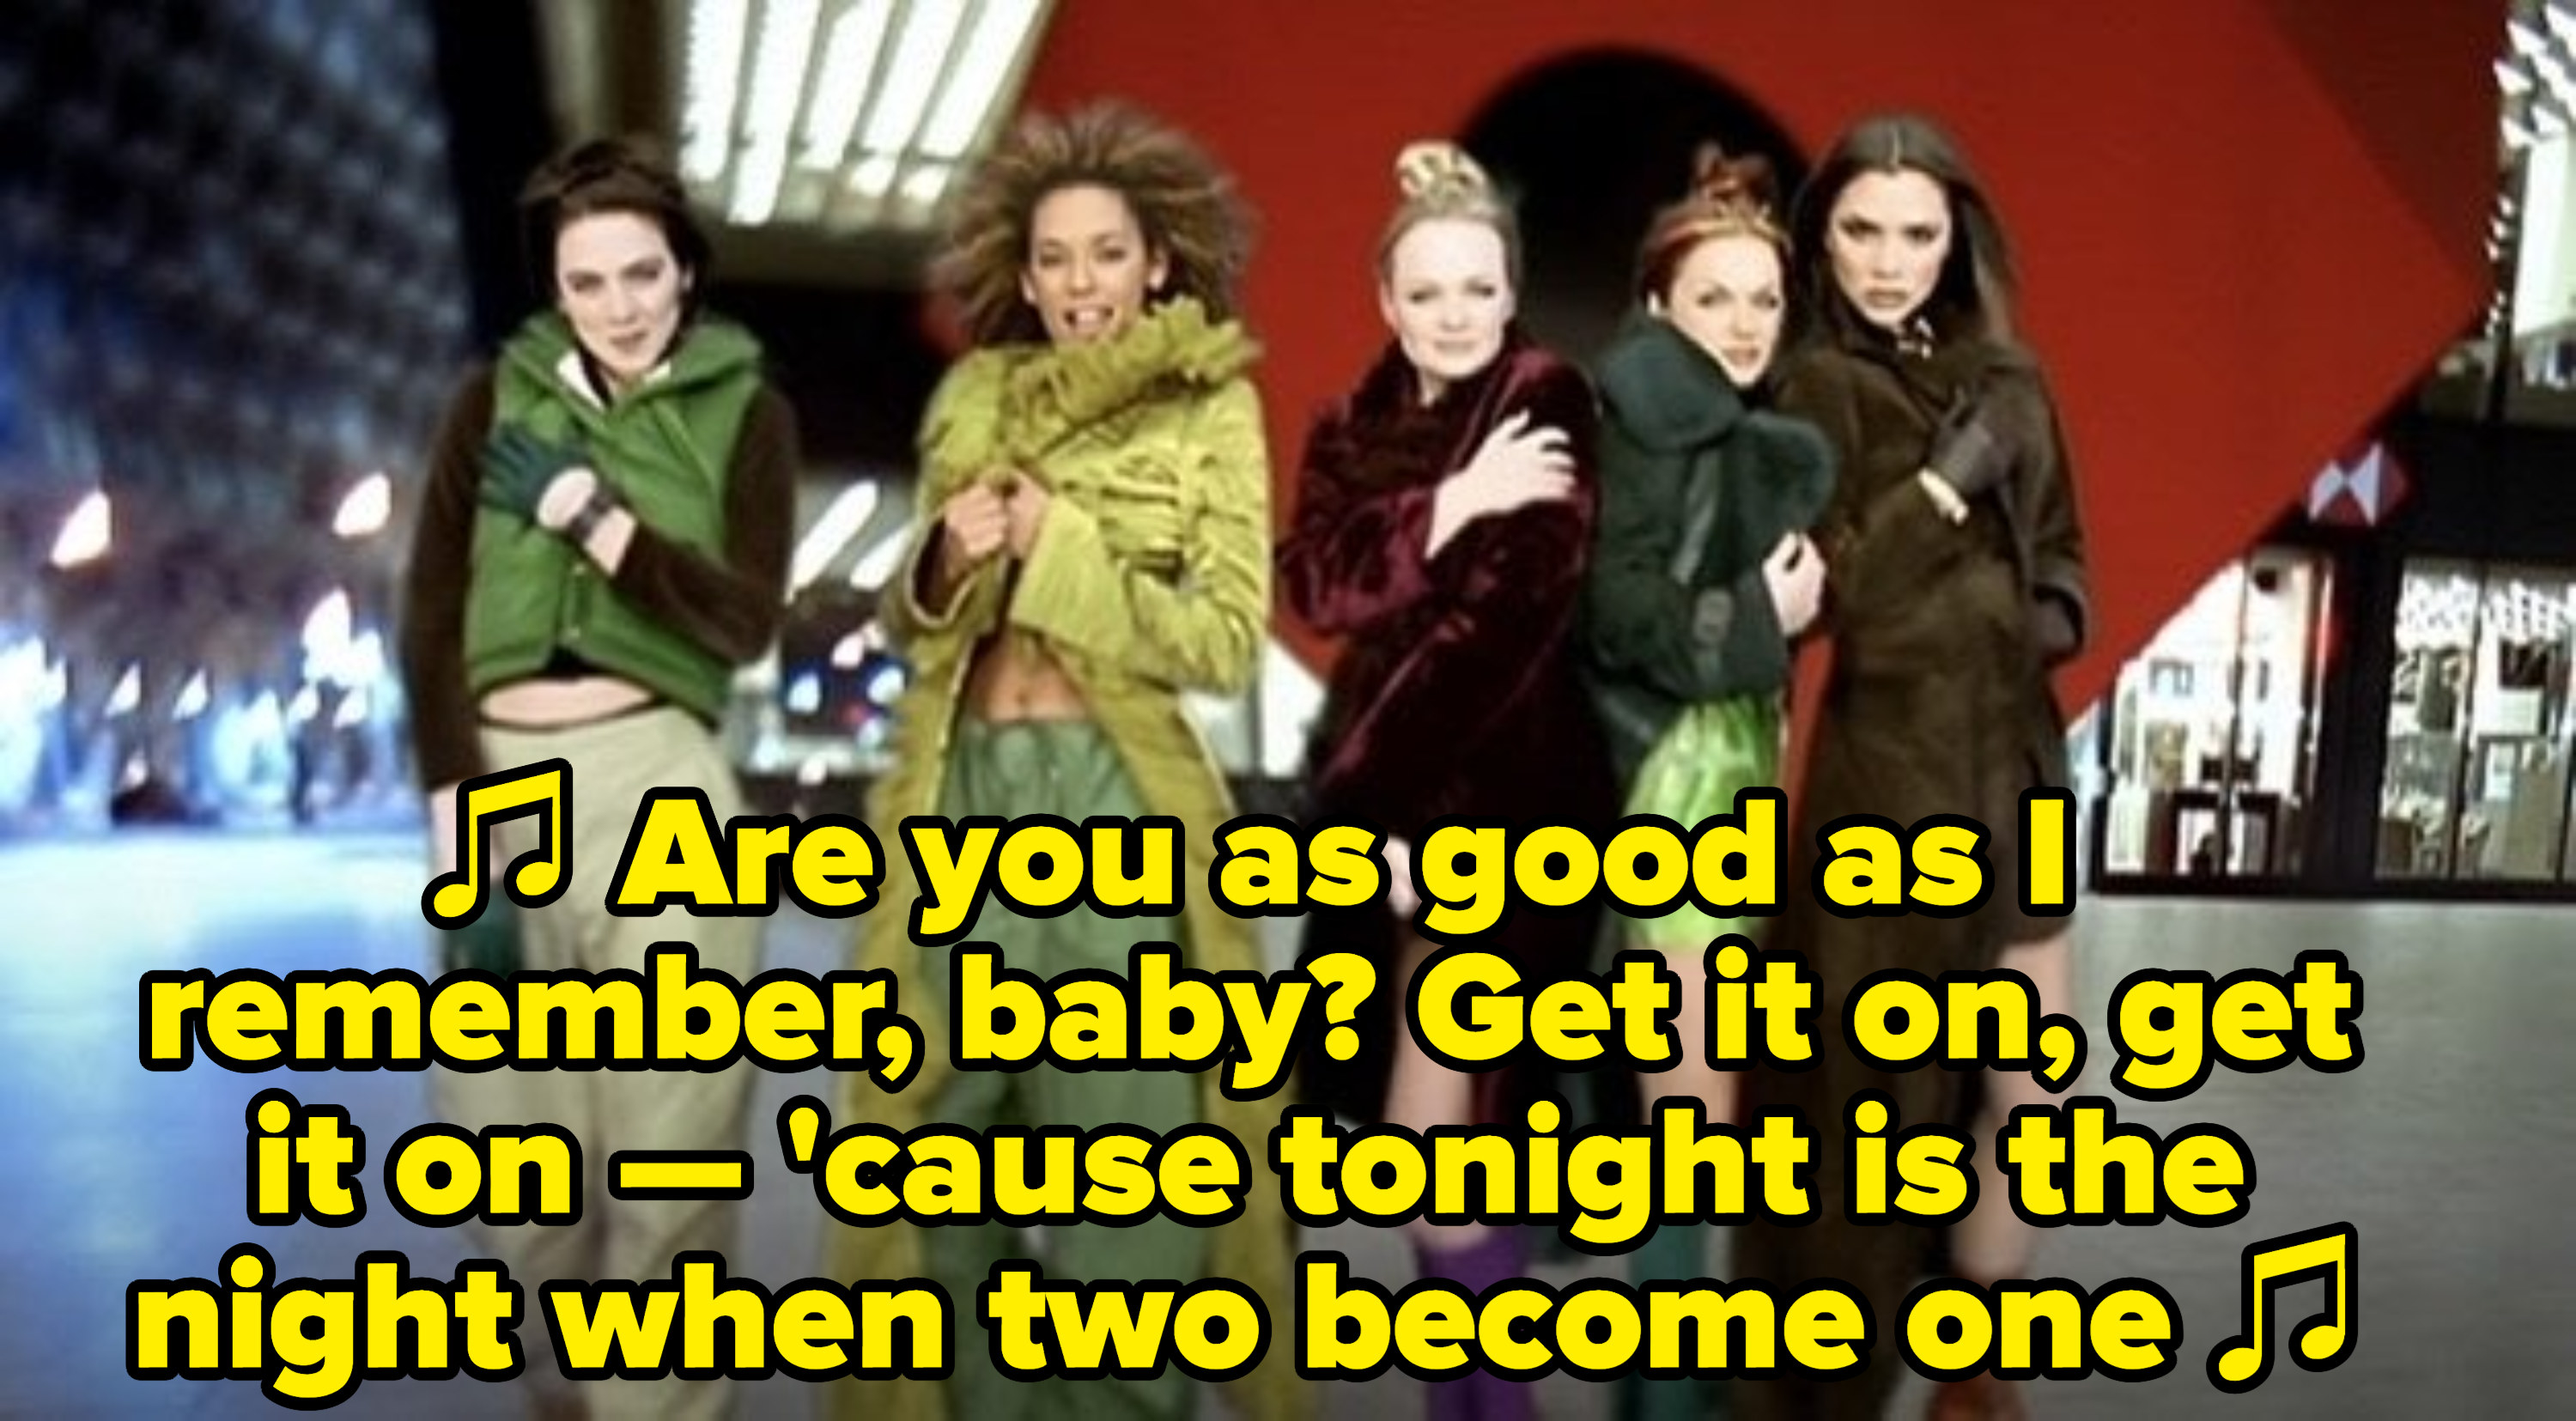 """the Spice Girls singing: """"Are you as good as I remember, baby? Get it on, get it on — 'cause tonight is the night when two become one"""""""